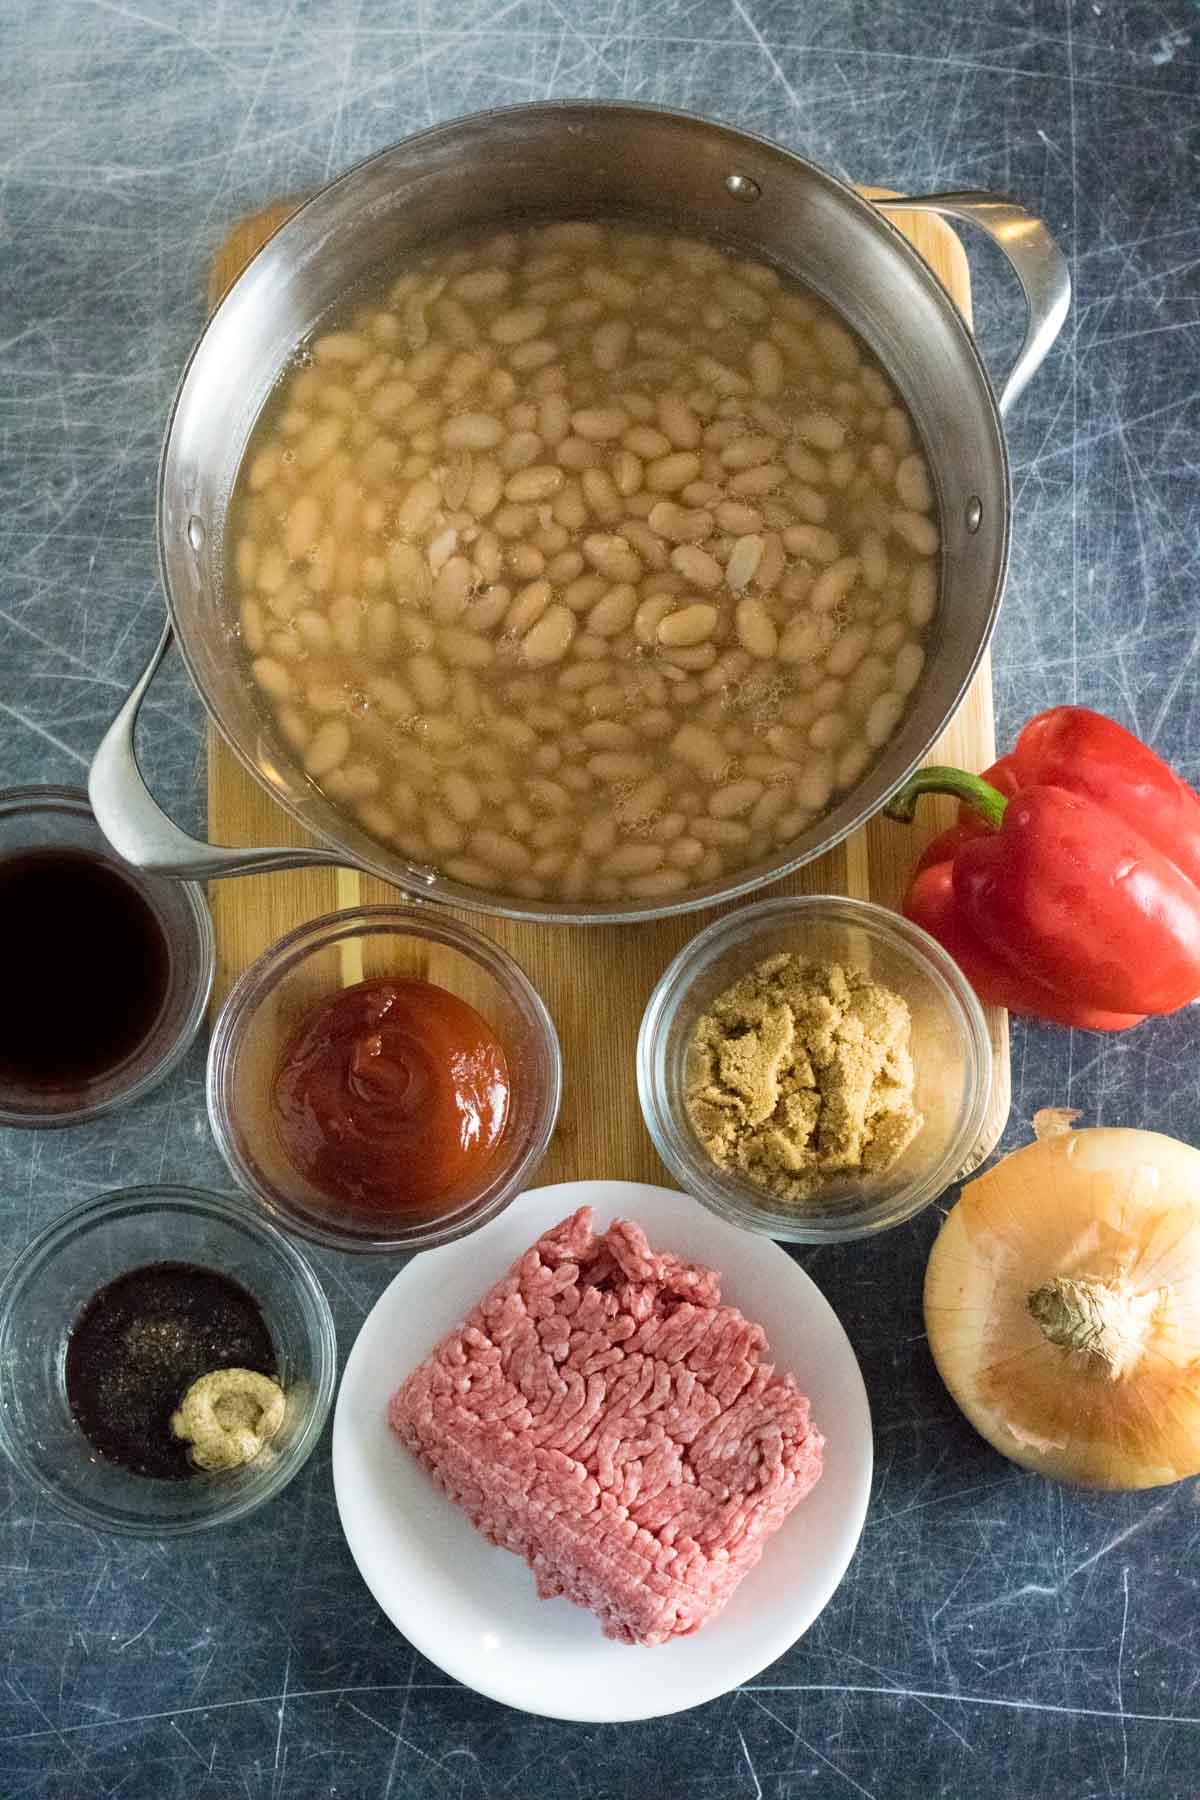 Ingredients for baked beans in separate bowls.